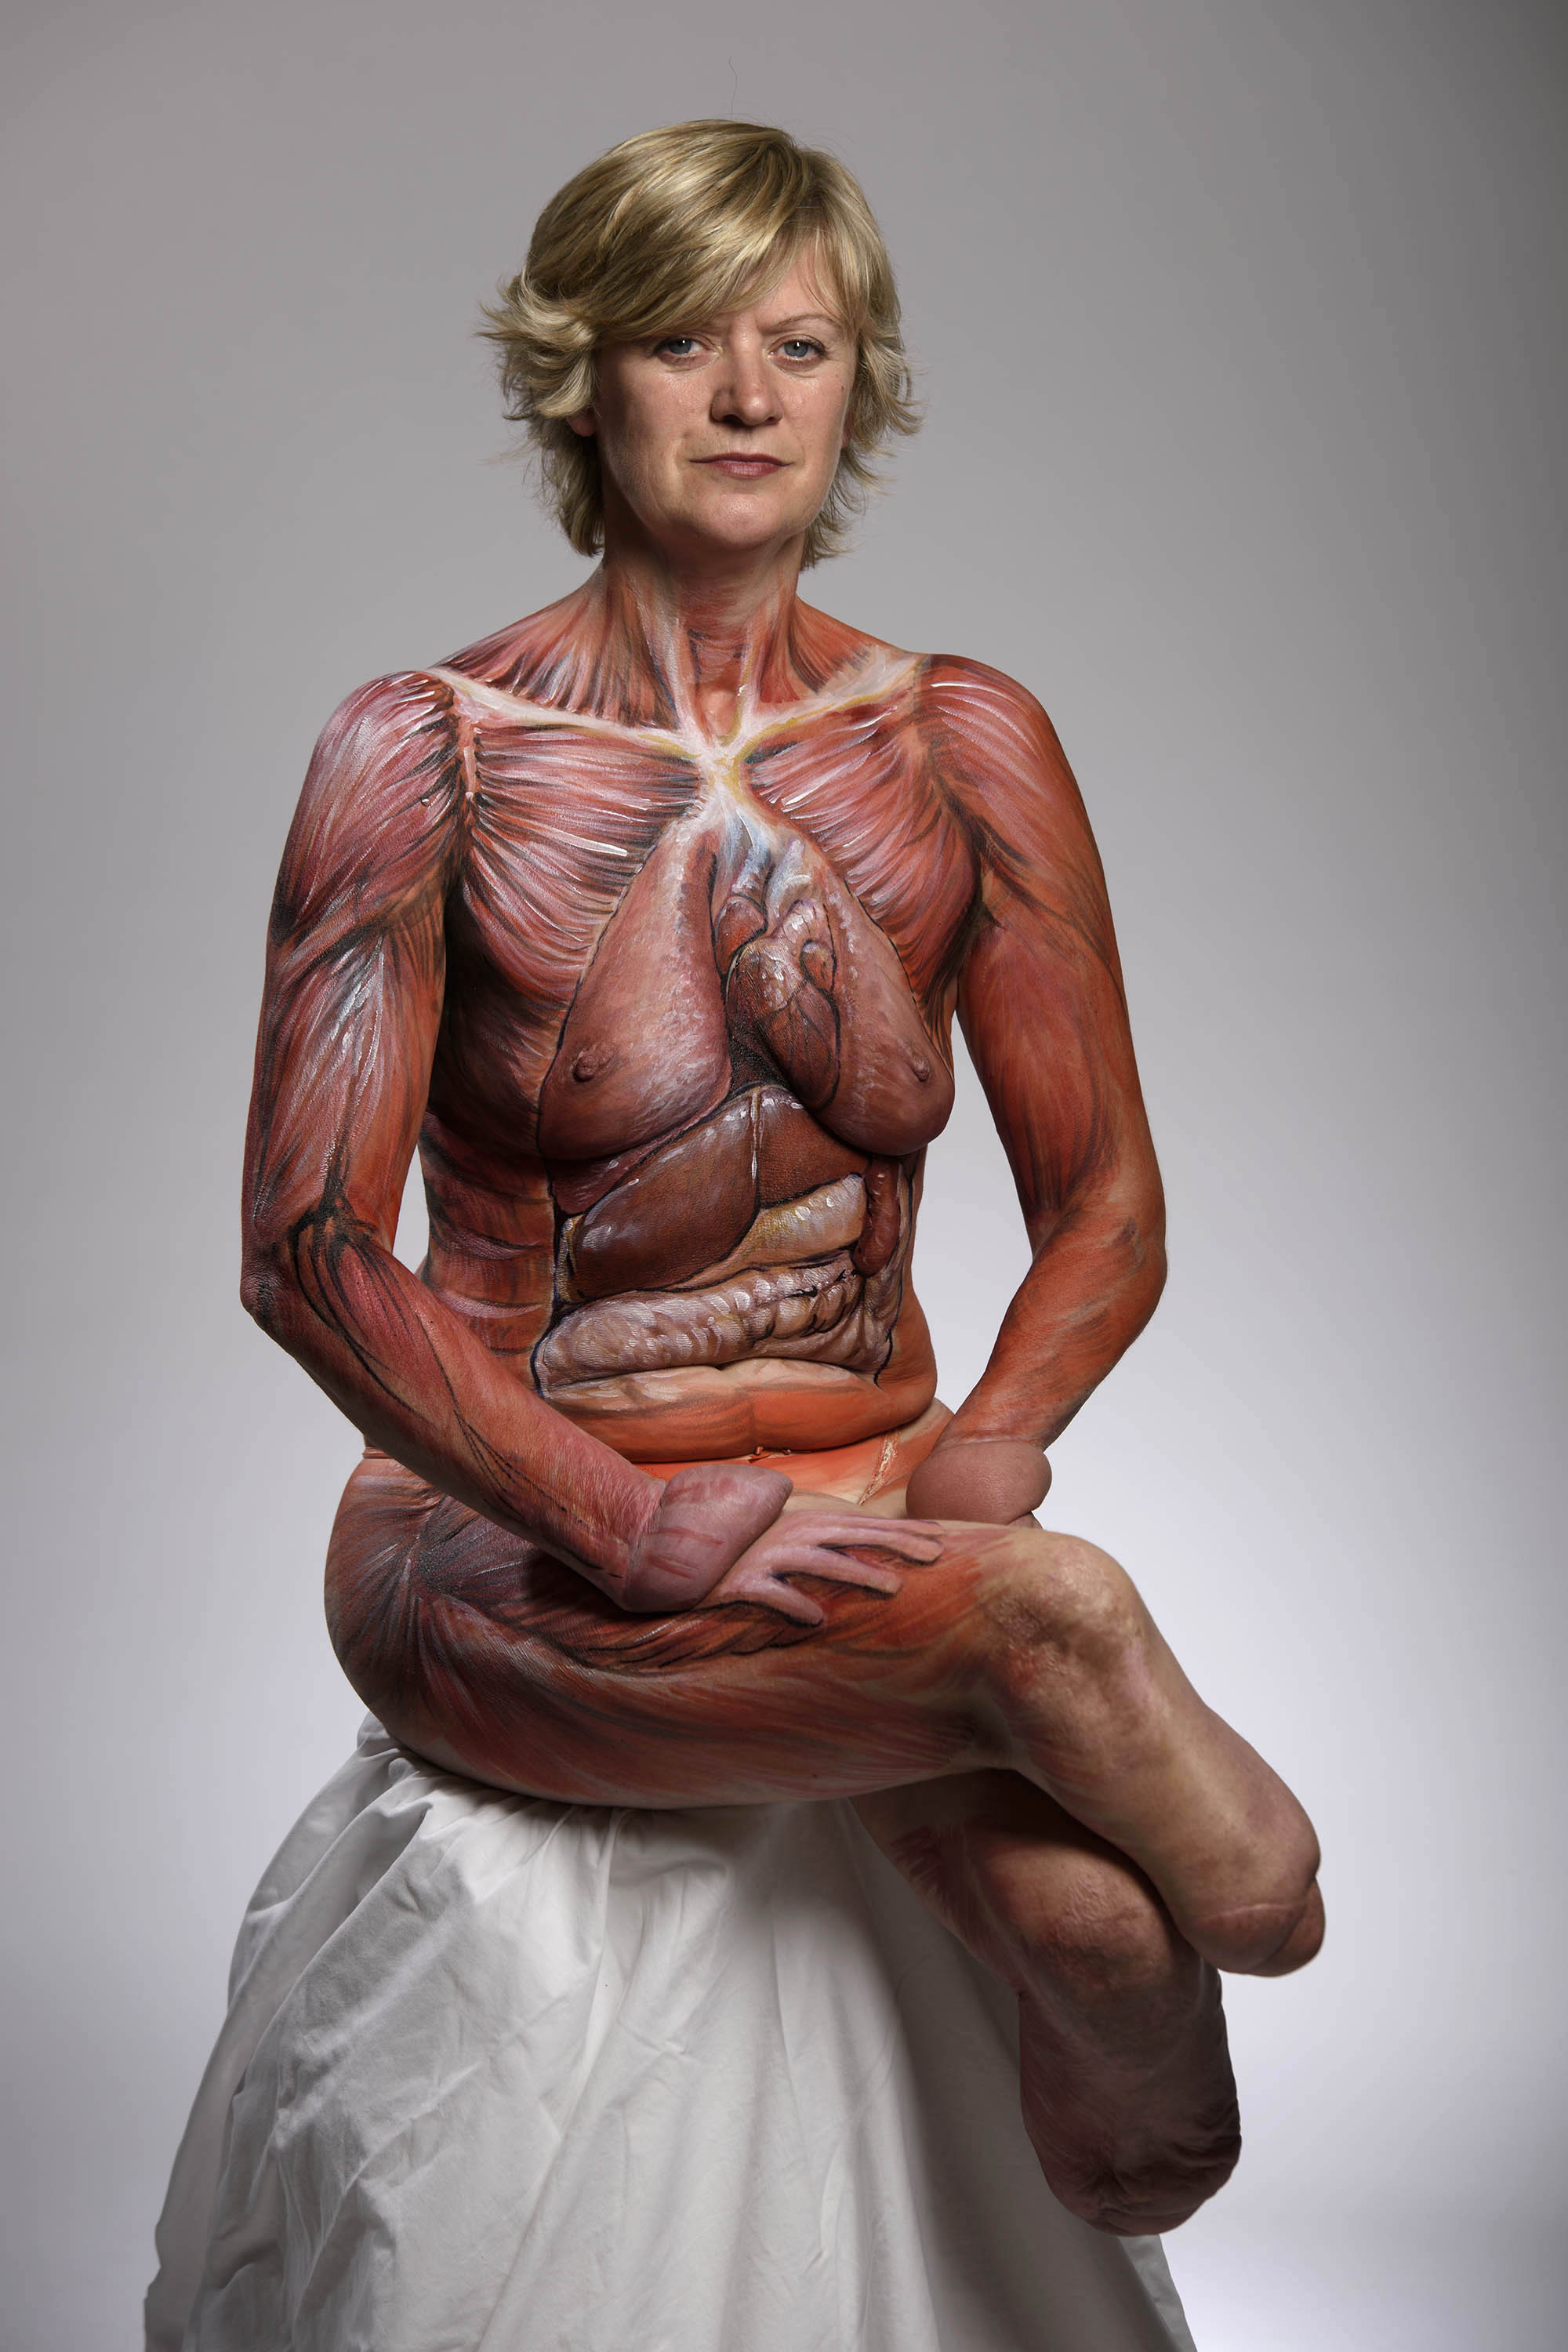 ONE USE ONLY Undated handout file photo issued by Finding Your Feet of quadruple amputee Corinne Hutton, with her body painted with organs and tissue that are deemed transplantable in a bid to help raise awareness. The single mother from Glasgow has been on the waiting list for a double hand transplant for two years. PRESS ASSOCIATION Photo. Issue date: Wednesday September 7, 2016. See PA story HEALTH Donation. Photo credit should read: John Linton/PA Wire NOTE TO EDITORS: This handout photo may only be used in for editorial reporting purposes for the contemporaneous illustration of events, things or the people in the image or facts mentioned in the caption. Reuse of the picture may require further permission from the copyright holder. LaPresse Only italy Corinne Hutton posa per la Organ Donation Week 065937